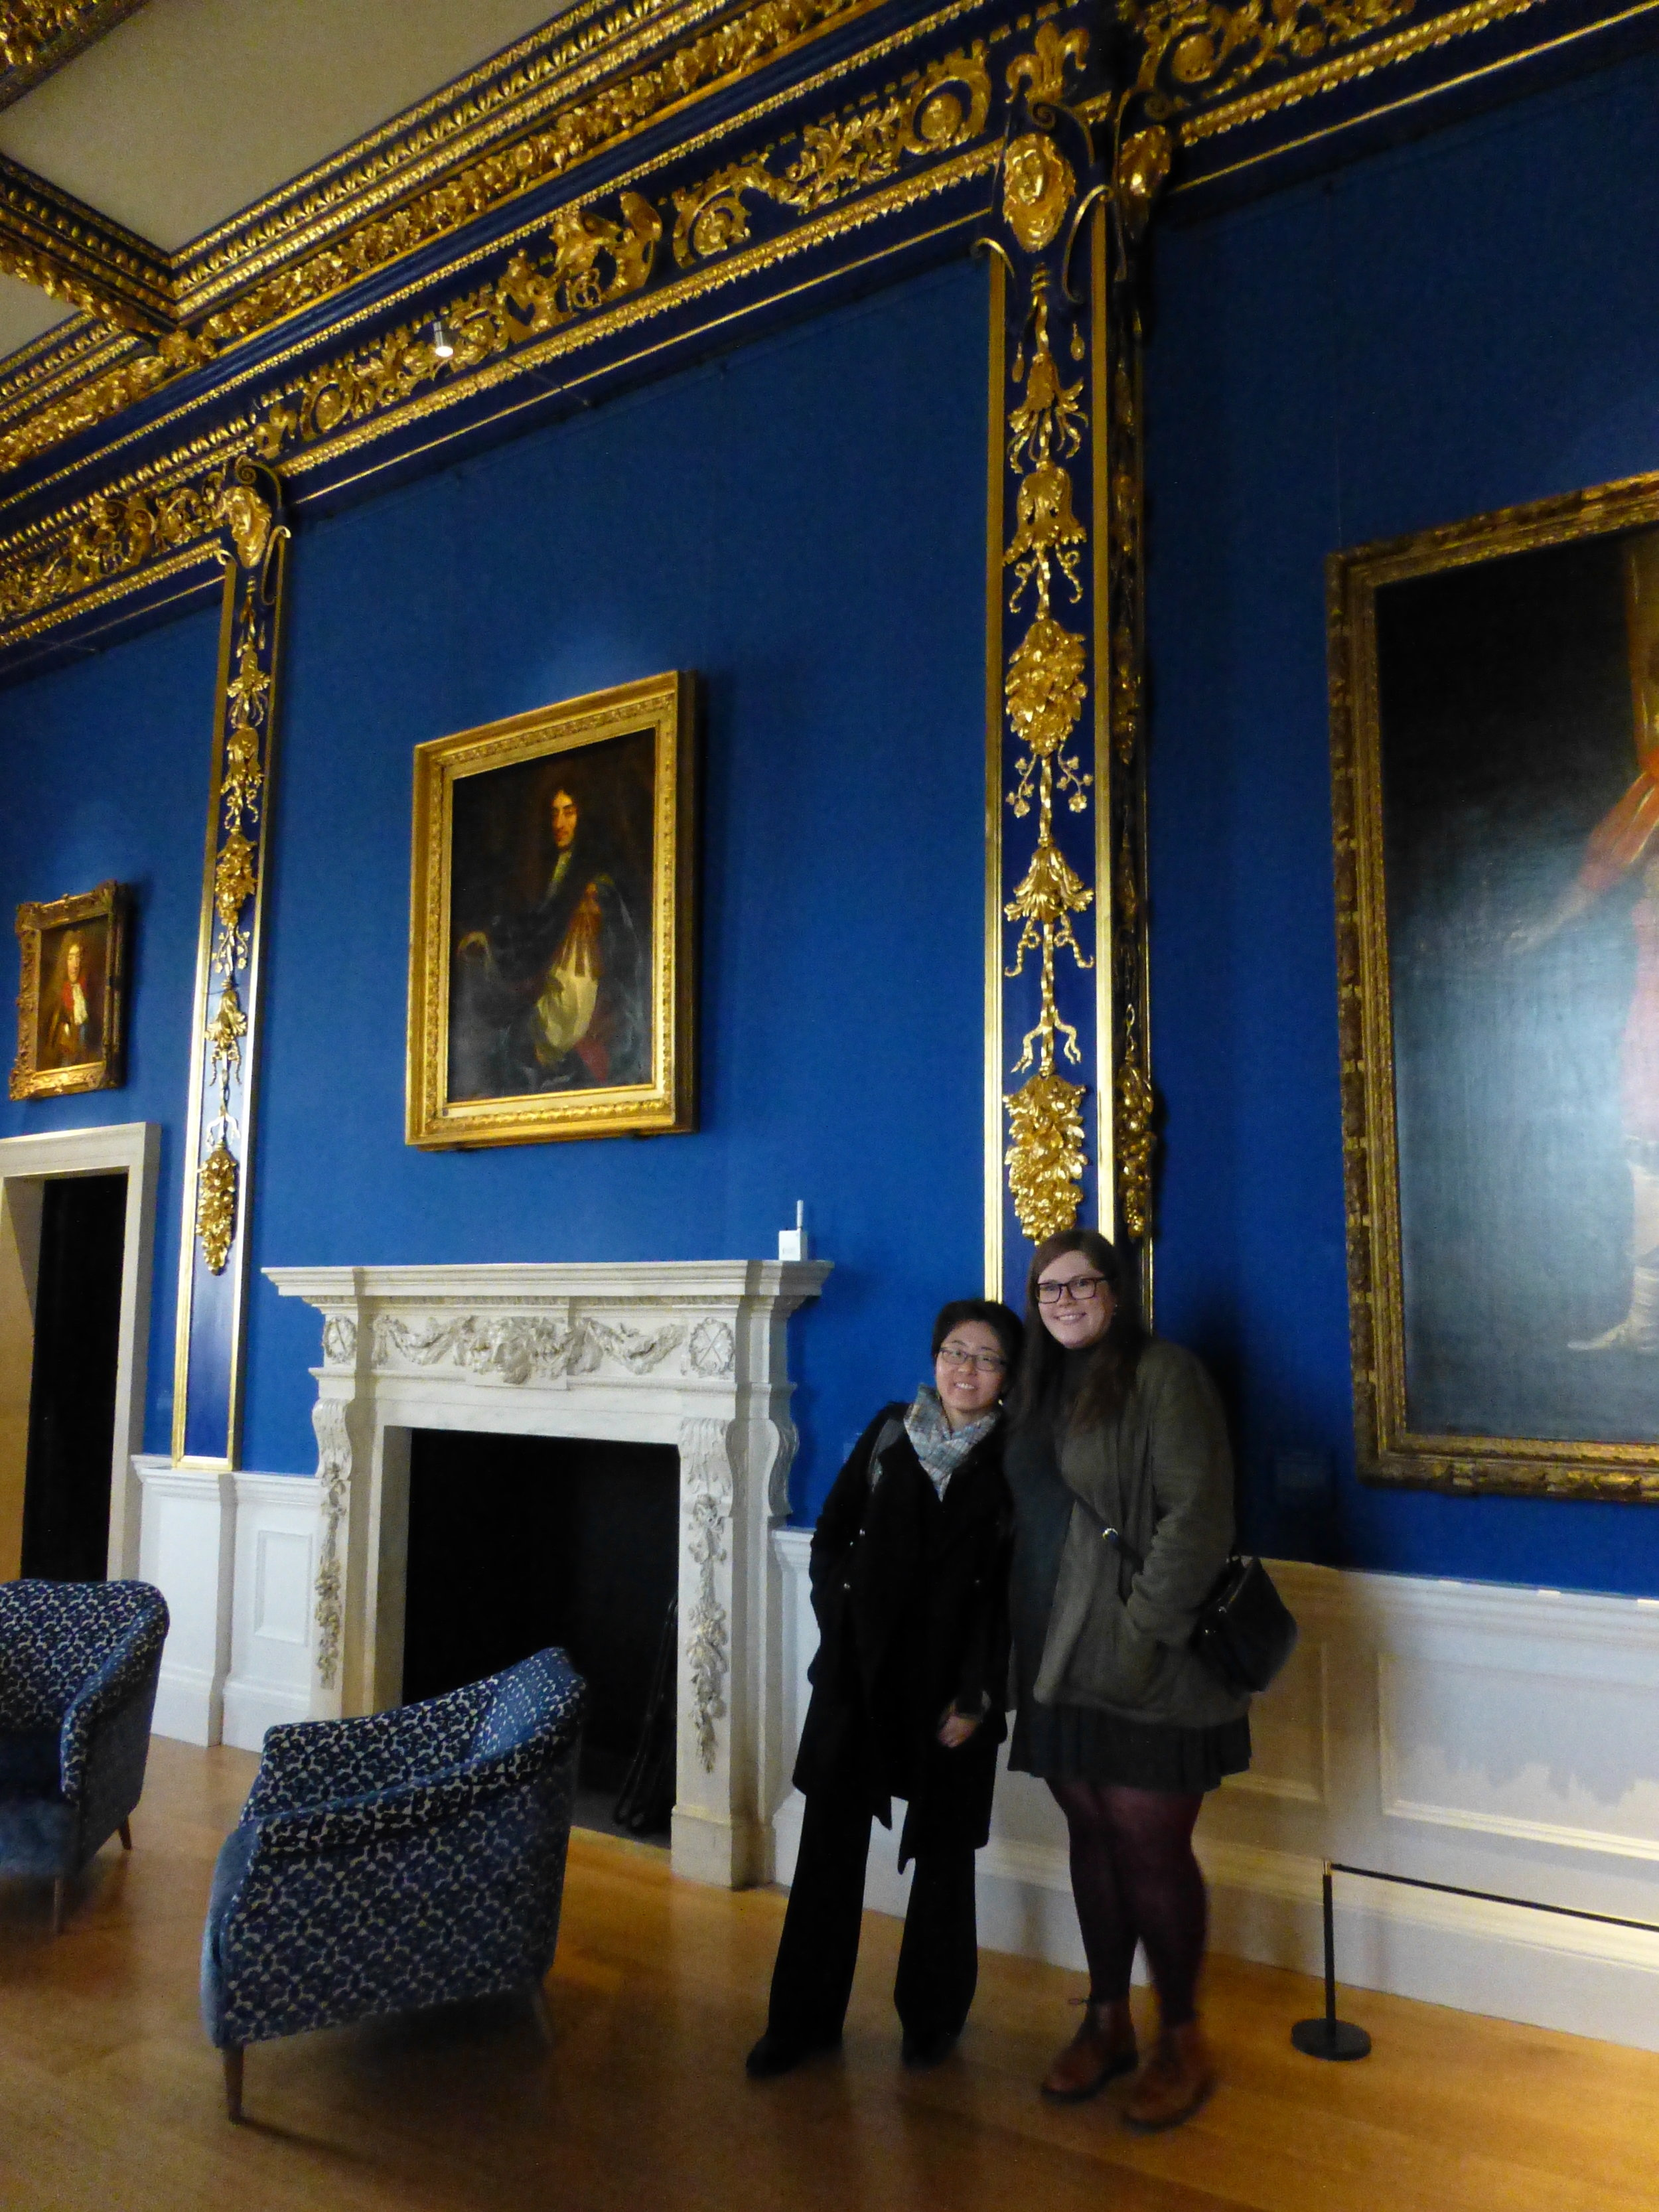 Carvers & Gilders - King's Presence Chamber - The Queen's House